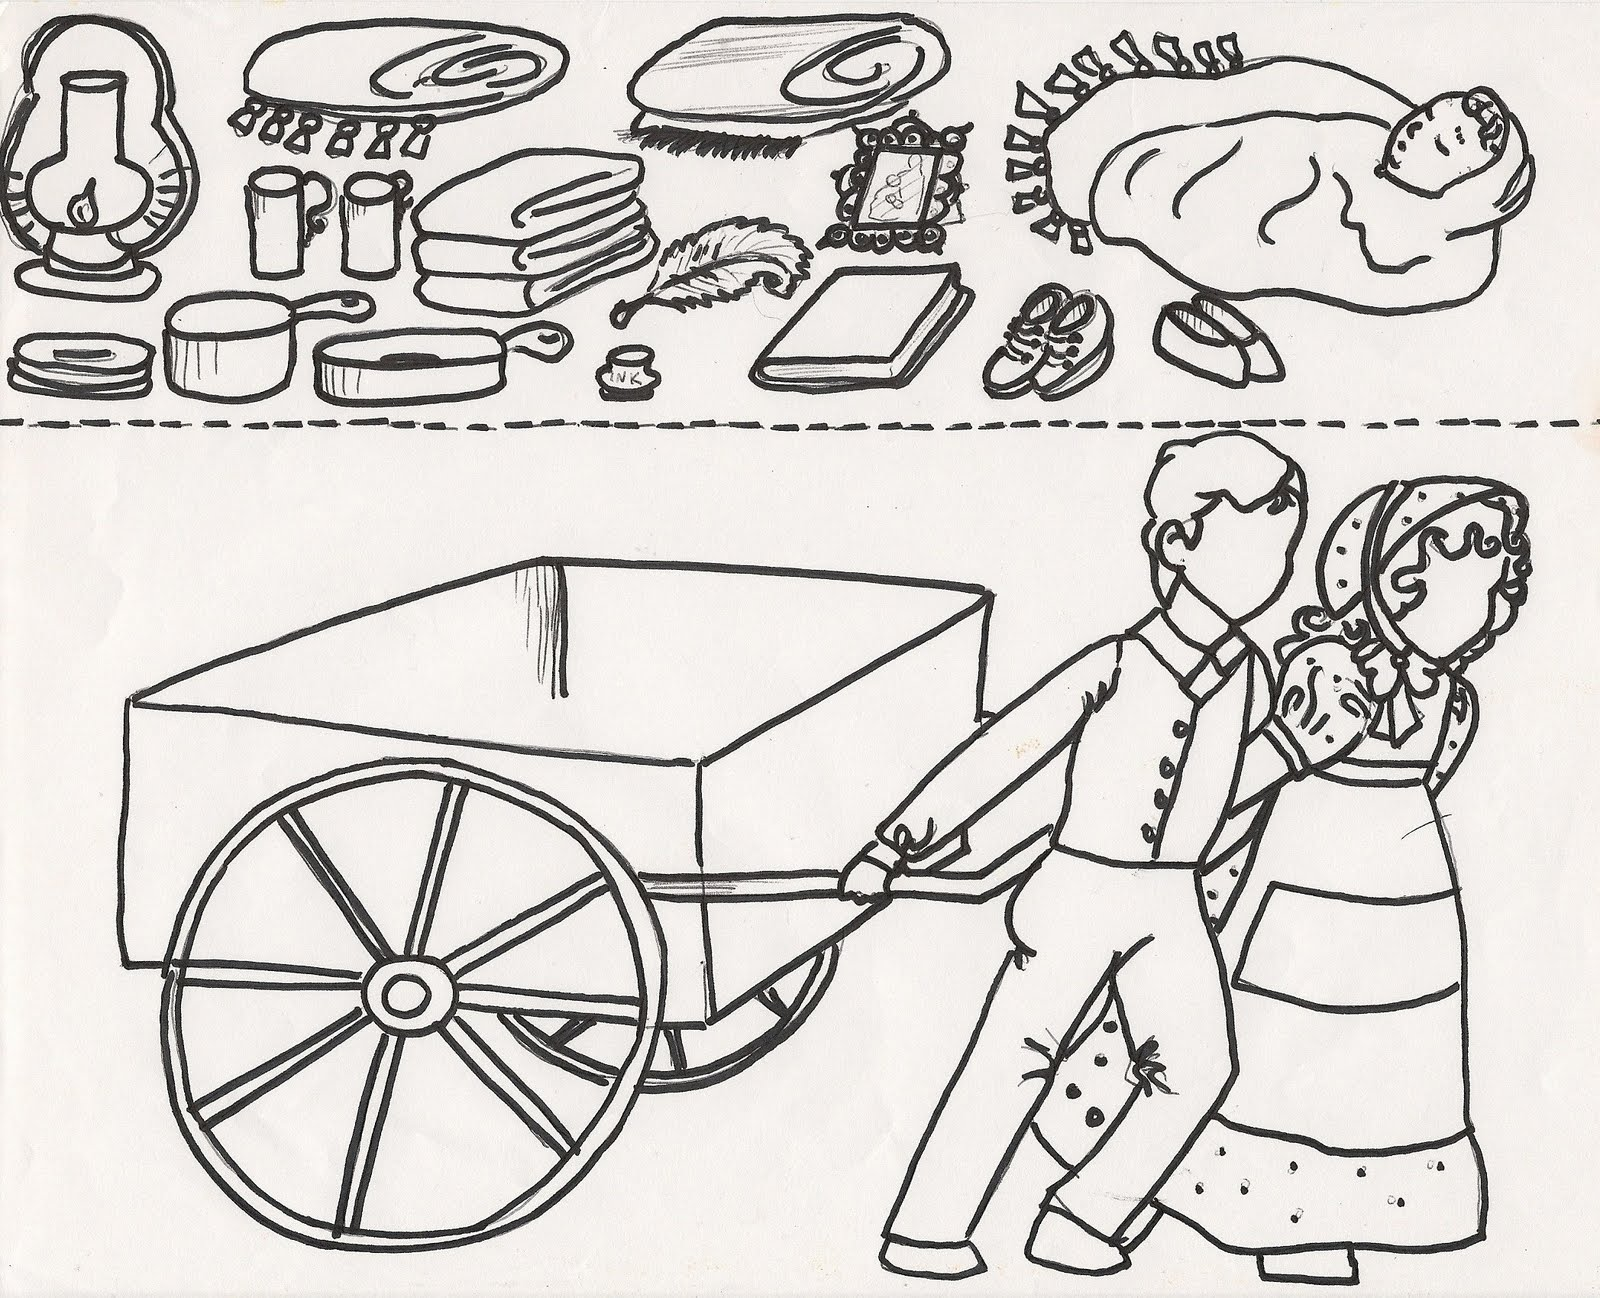 Pioneer Supplies Coloring Page, lds pioneer day clip art coloring.